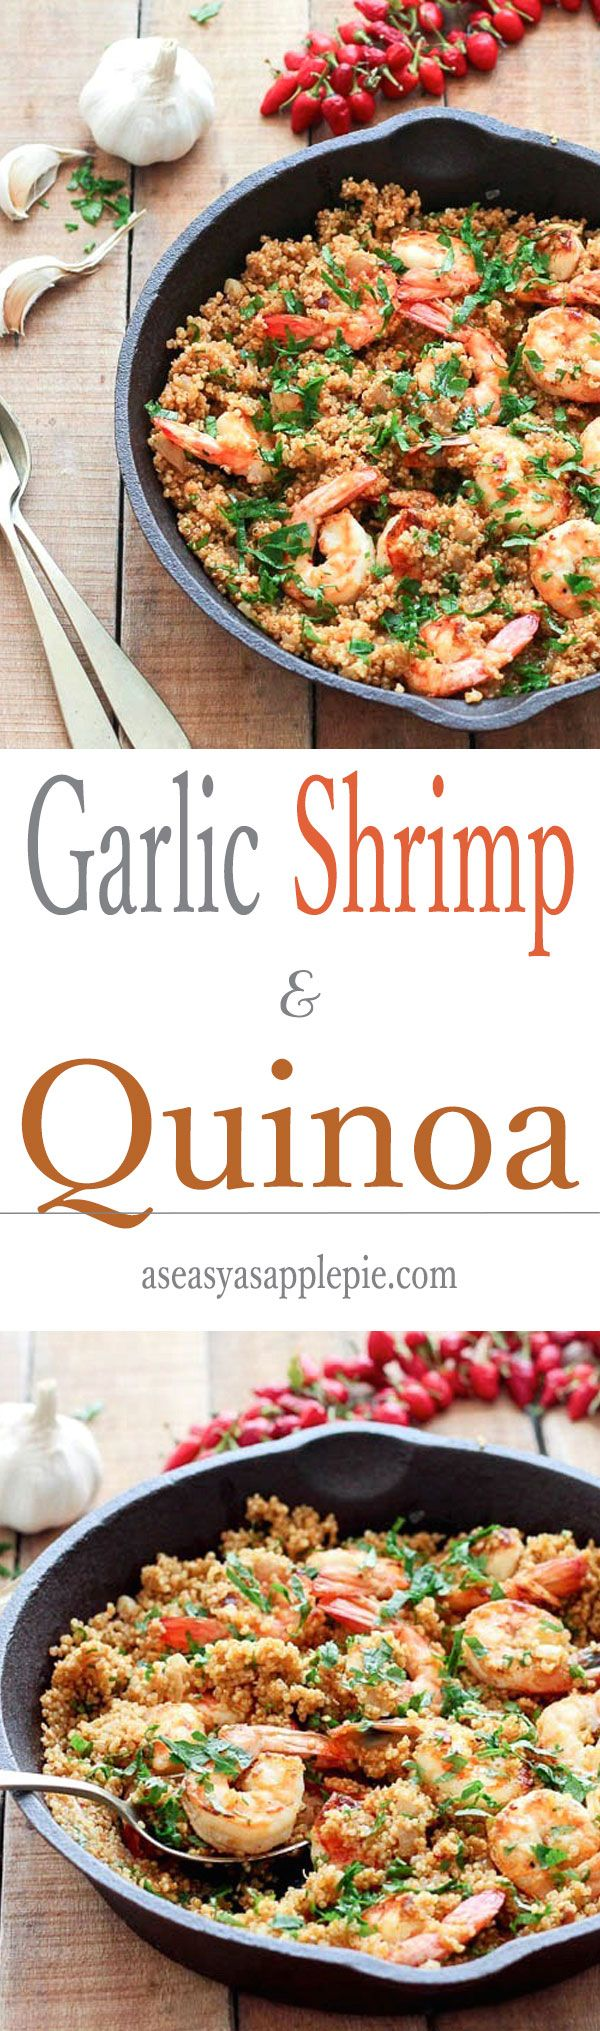 Garlic Shrimp and Quinoa : a quick and tasty meal filled with nutrition